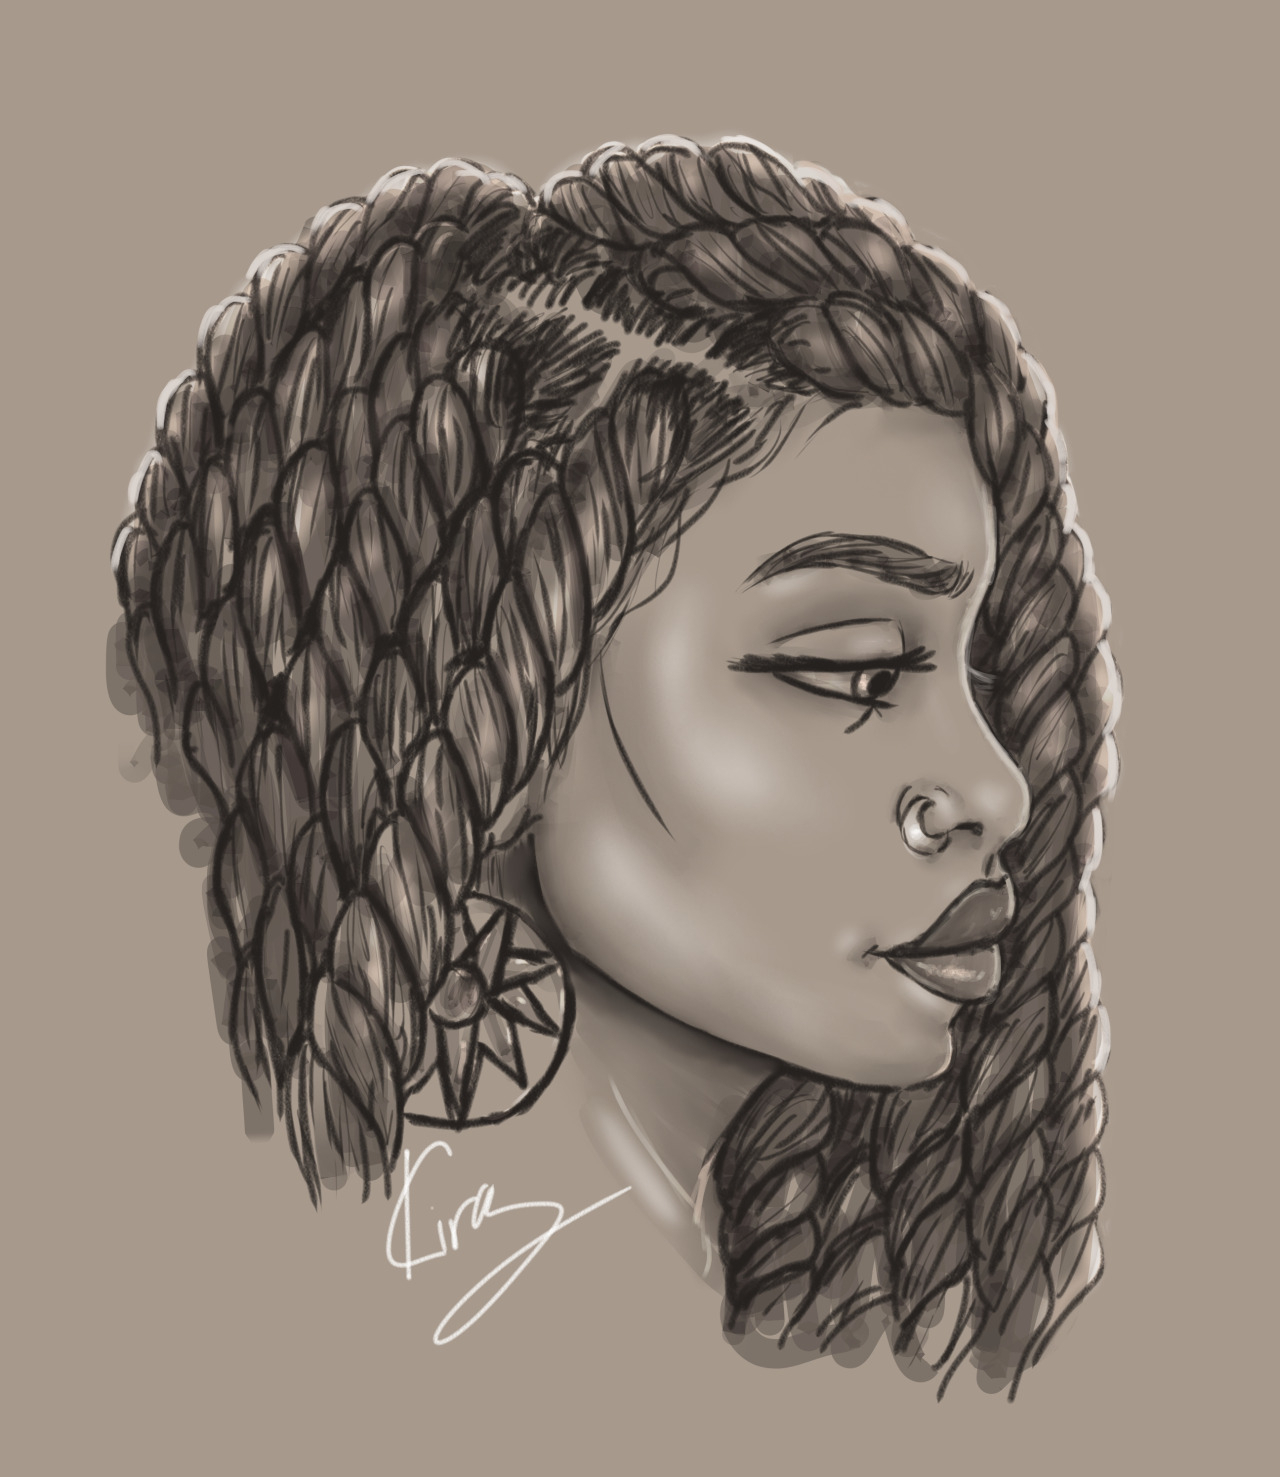 1280x1477 Black Girl Drawing Tumblr African American Girl Drawing Tumblr